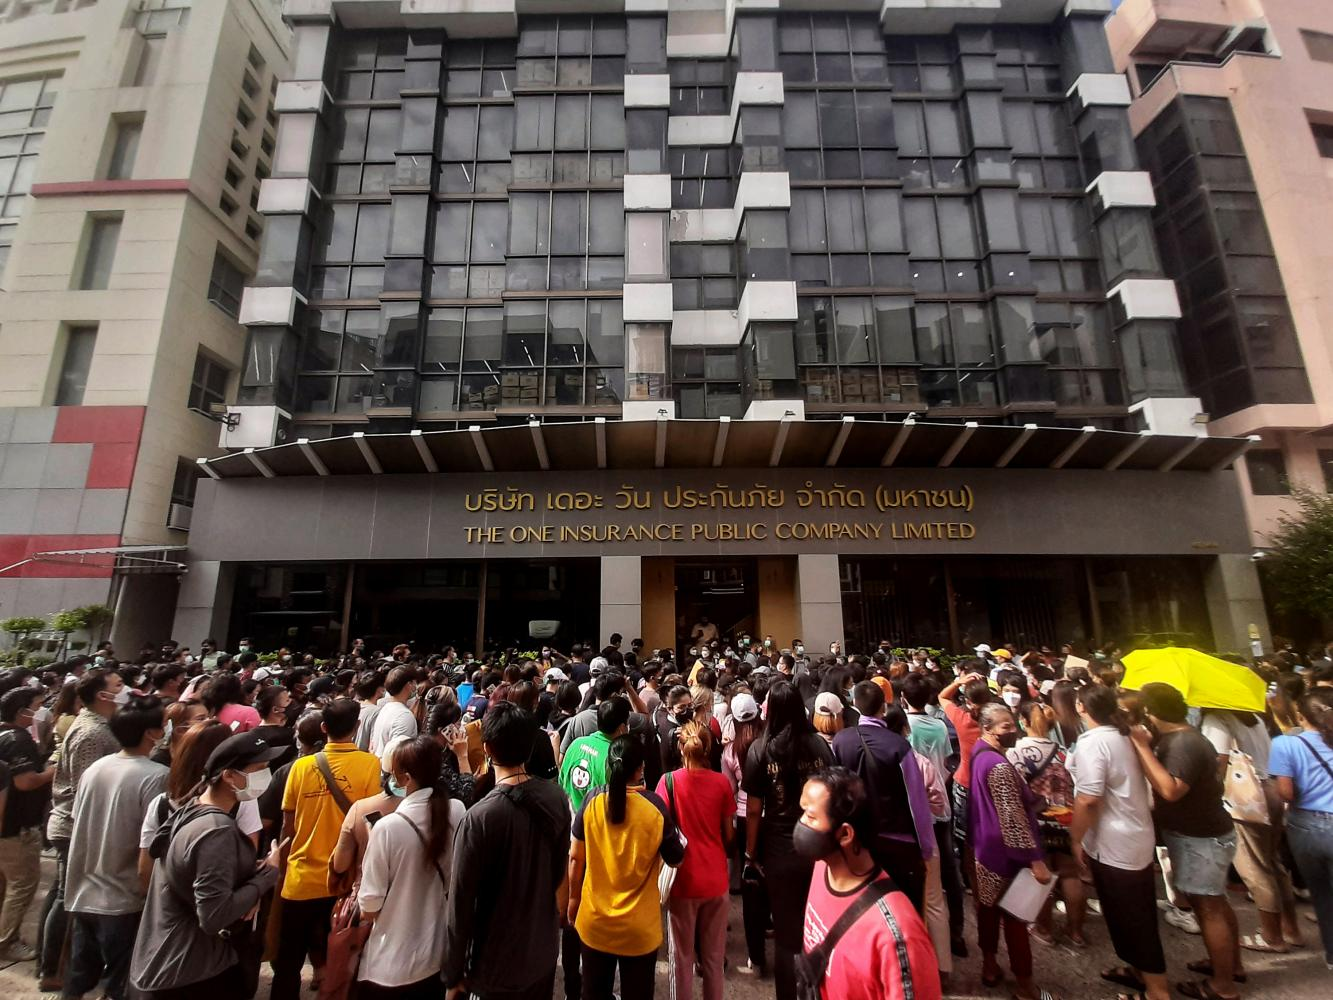 Around 500 people gather in front of The One Insurance Plc on Monday to push for speedier claims reimbursement for Covid-19 insurance. ARNUN CHOLMAHATRAKOOL